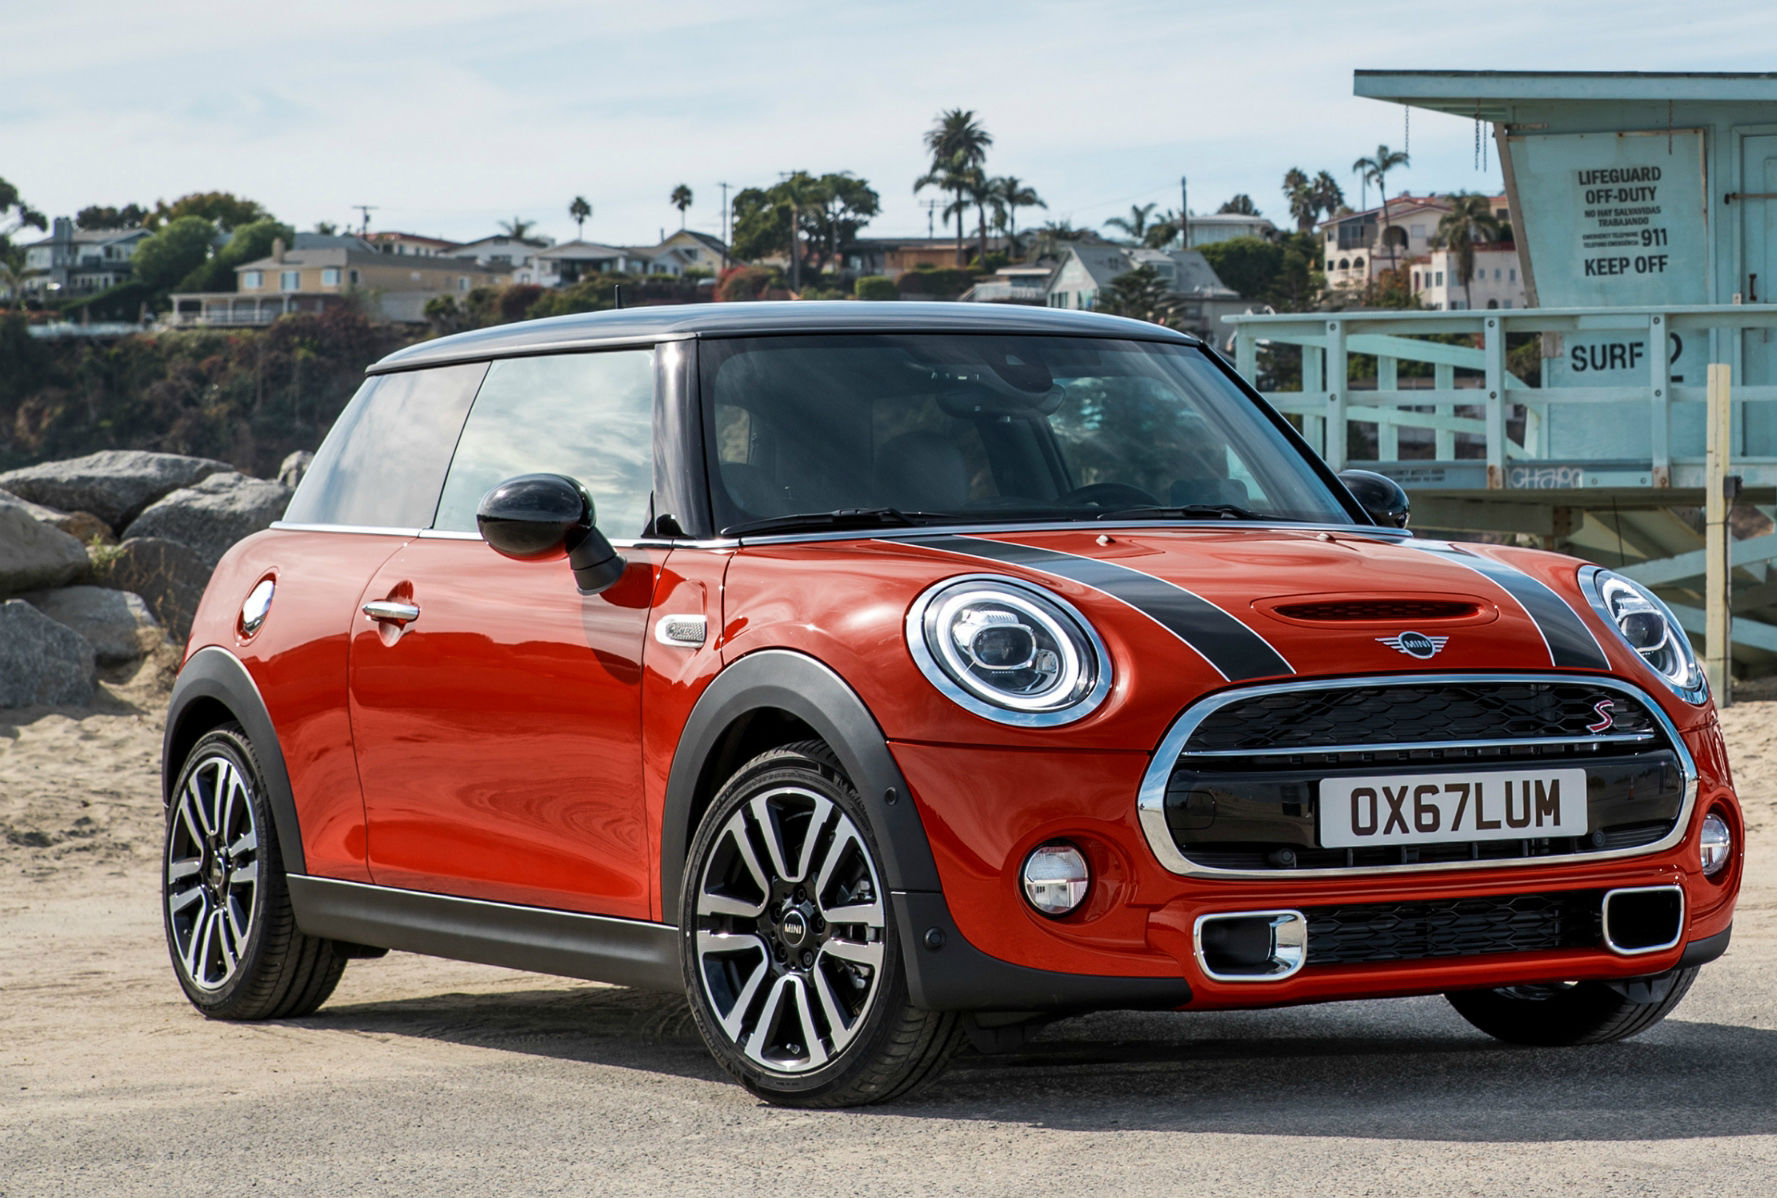 2019 Mini Cooper Lease Deal: $229 per month for 36 months with $2,999 due at signing (Courtesy BMW of North America)